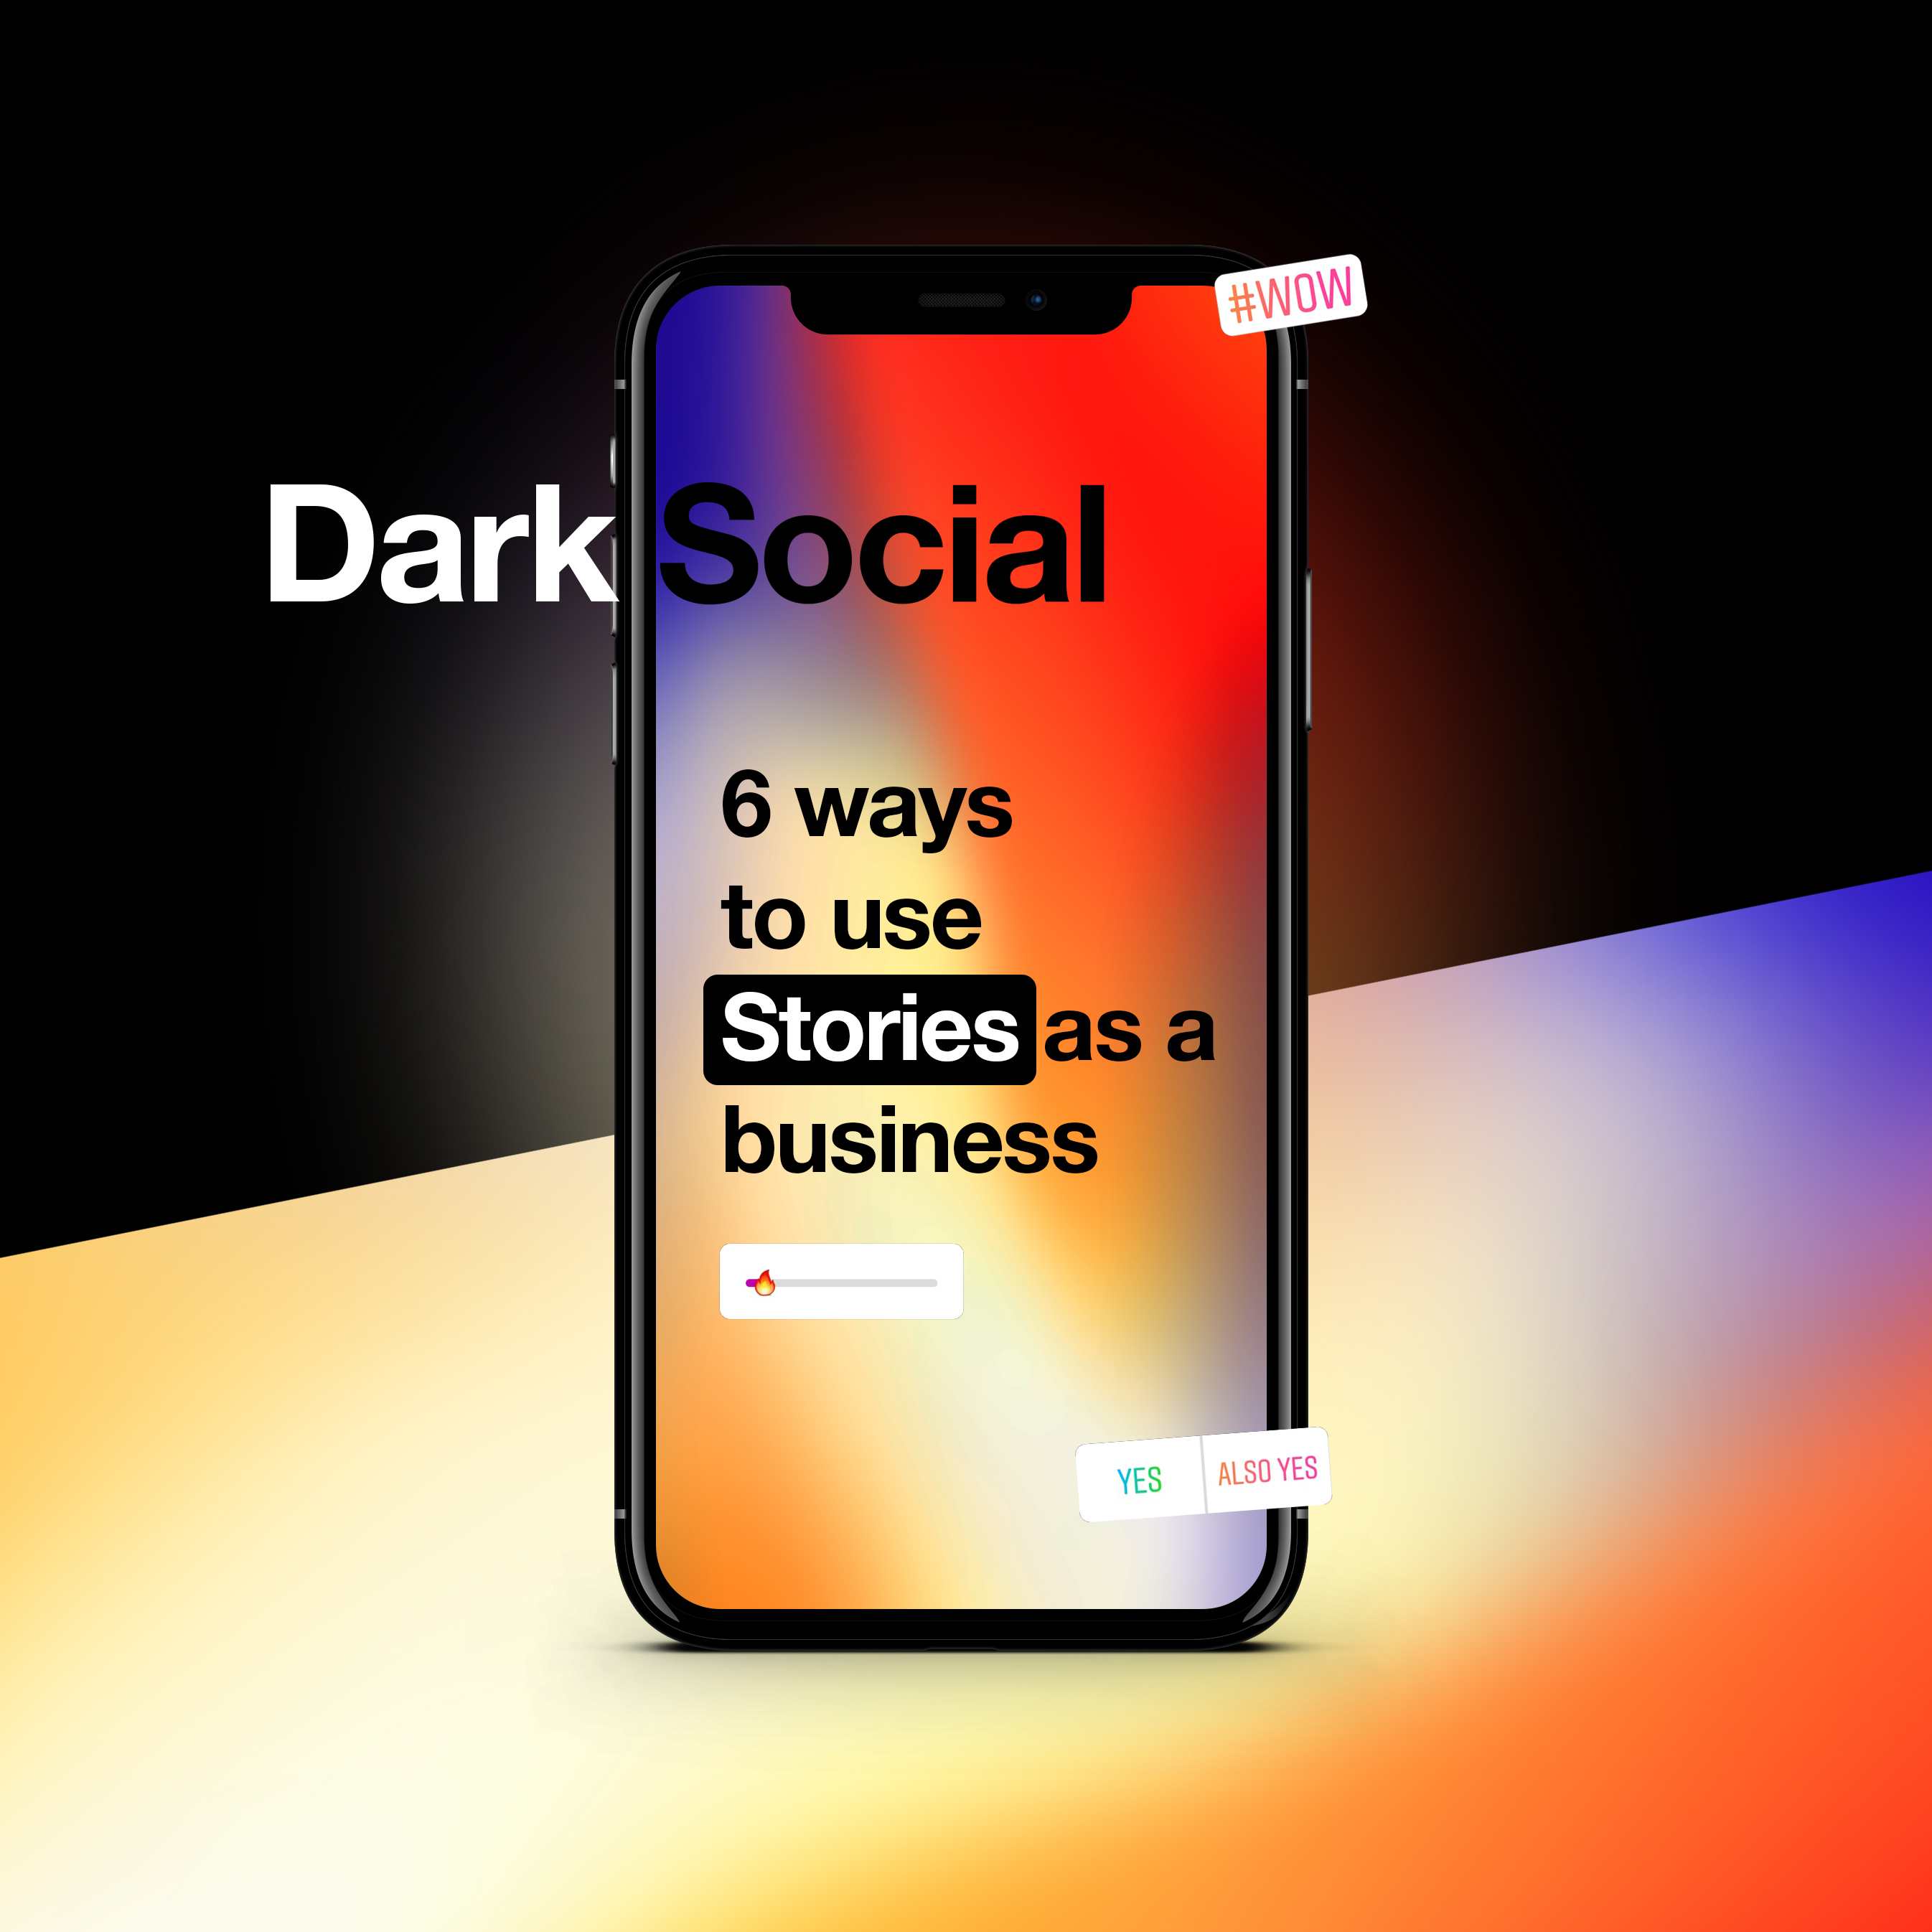 Dark Social - 6 ways to use Stories as a business